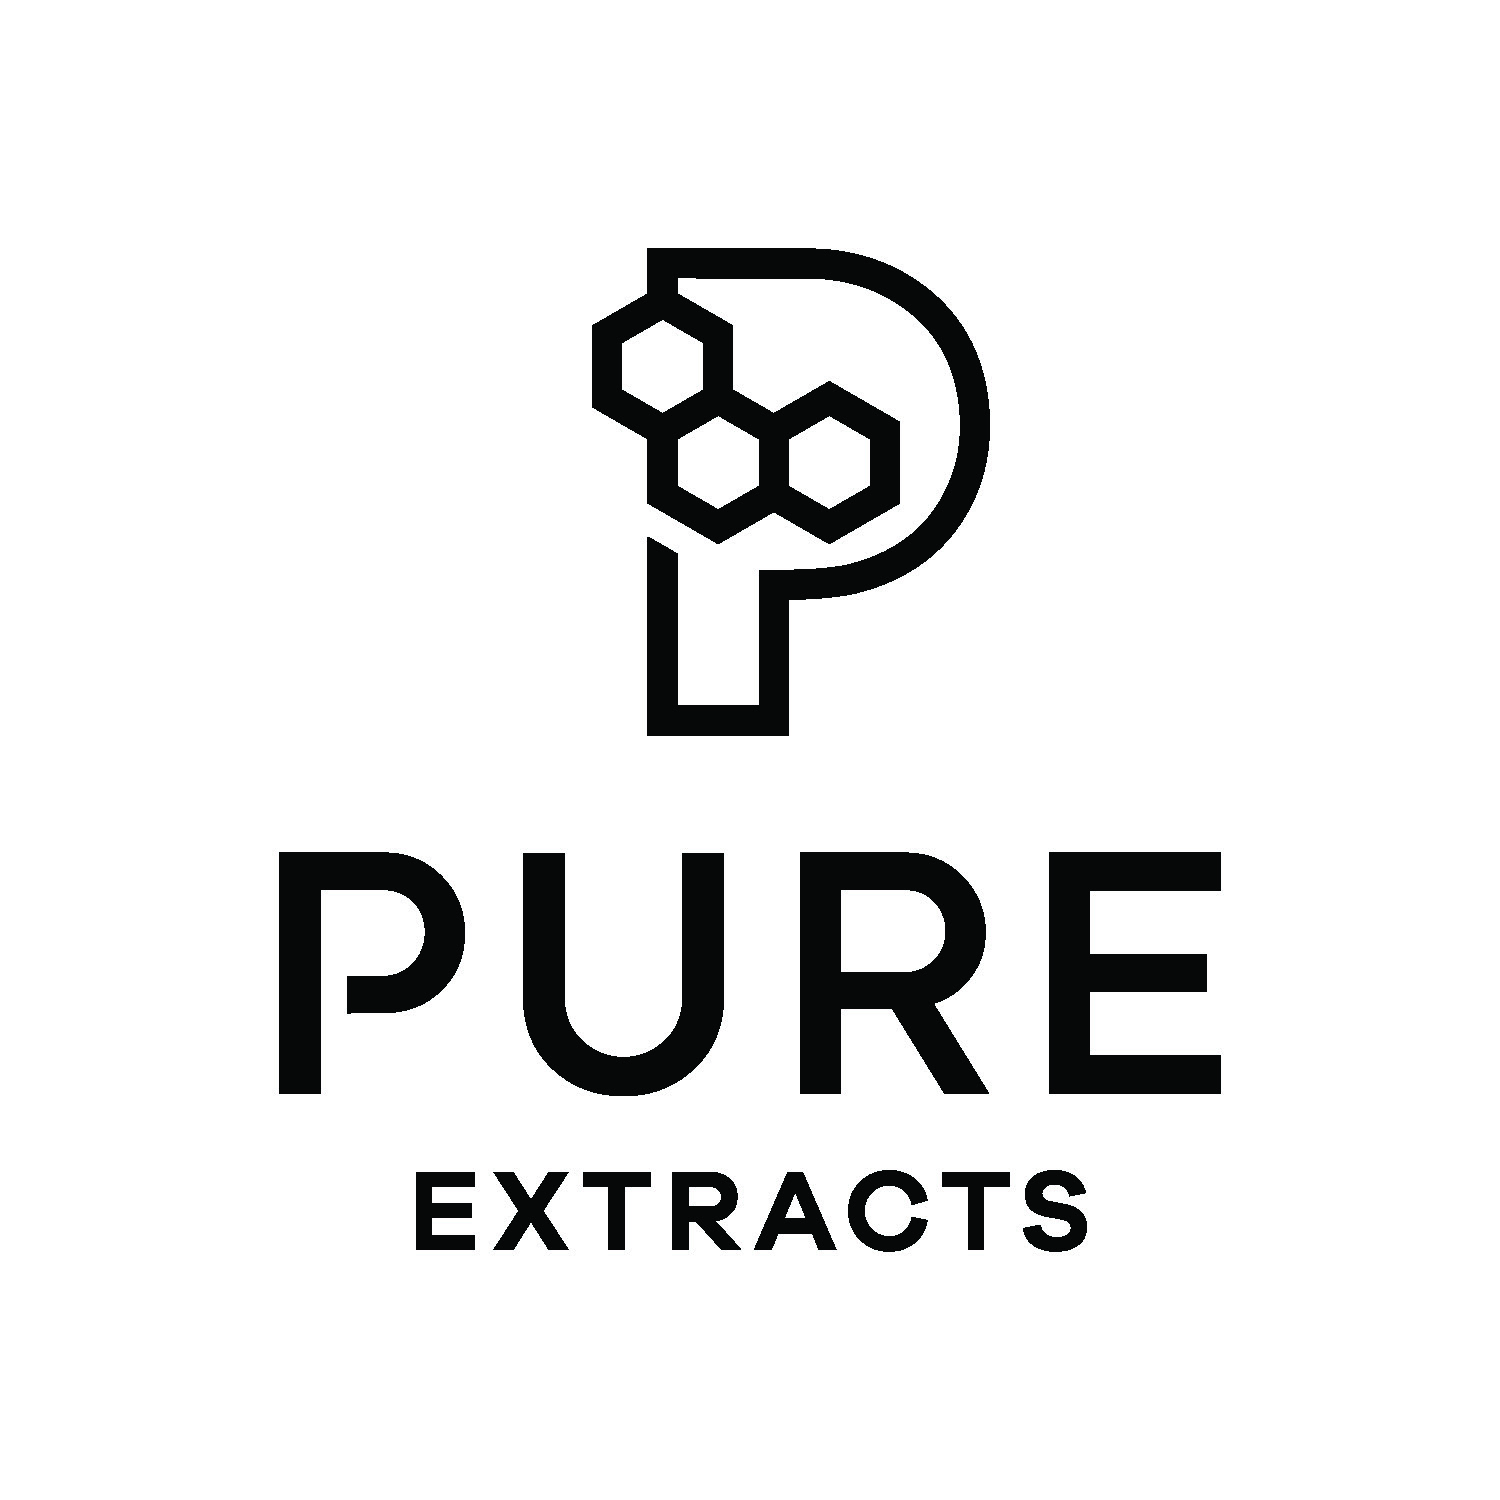 Pure Extracts Technologies Corp